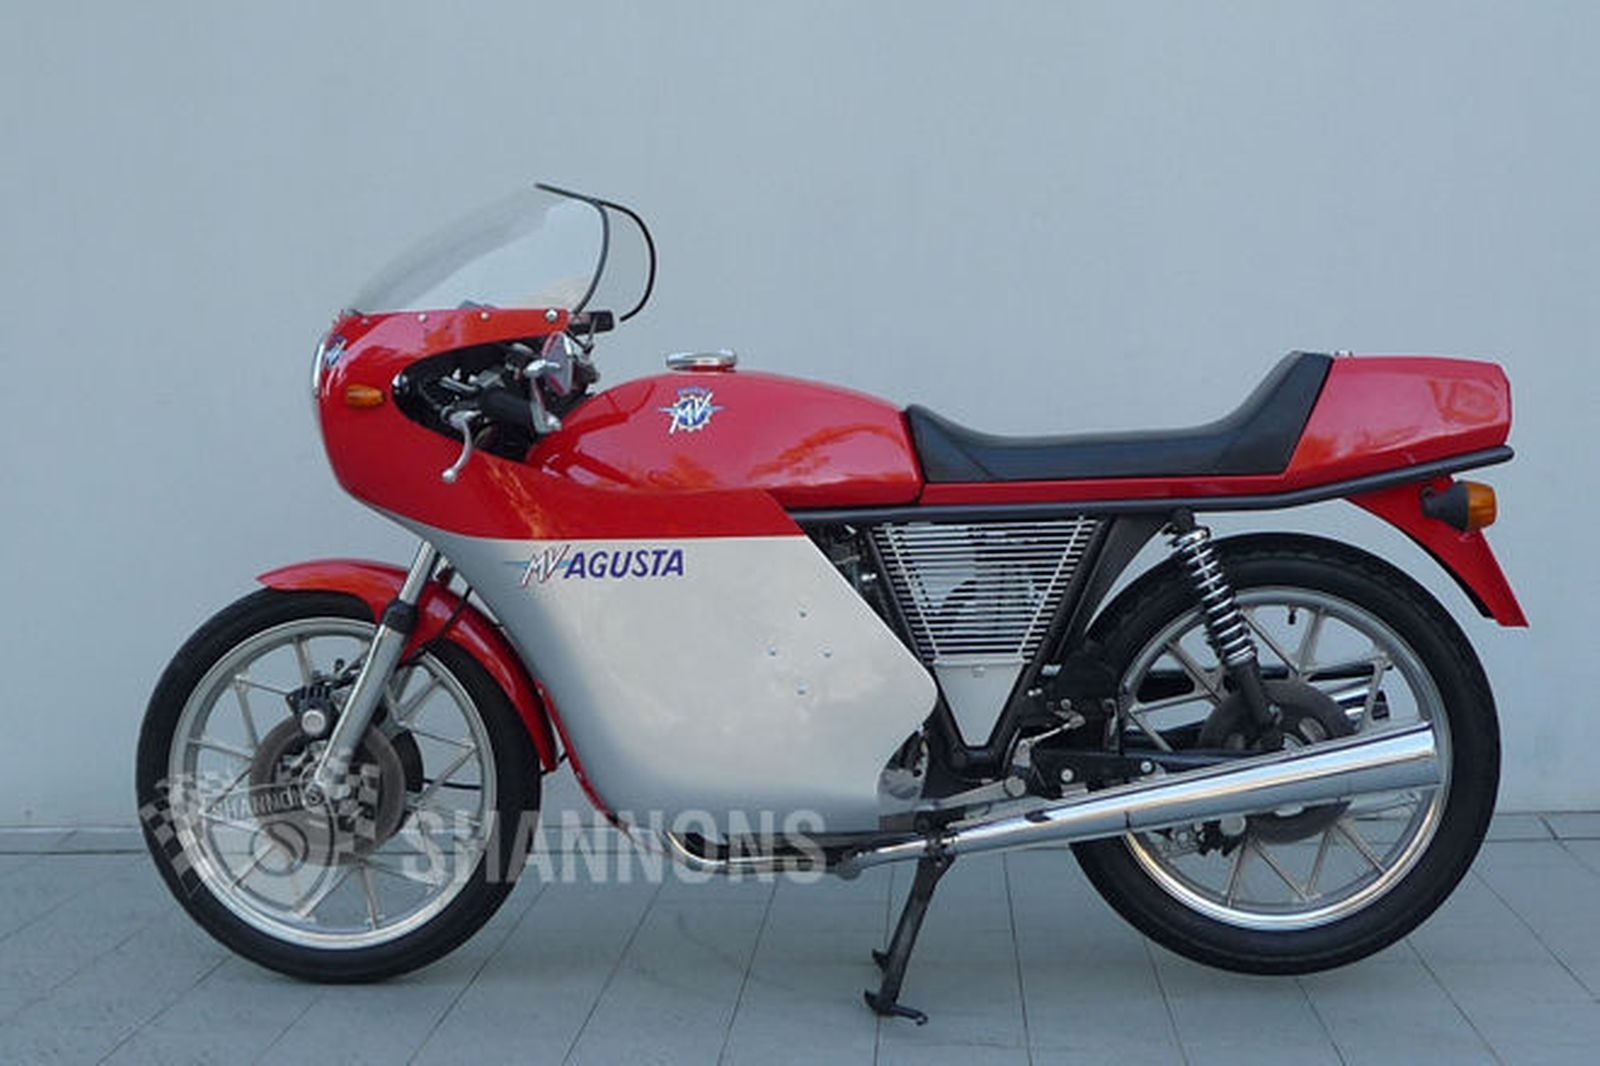 Mv agusta 350 photo - 7